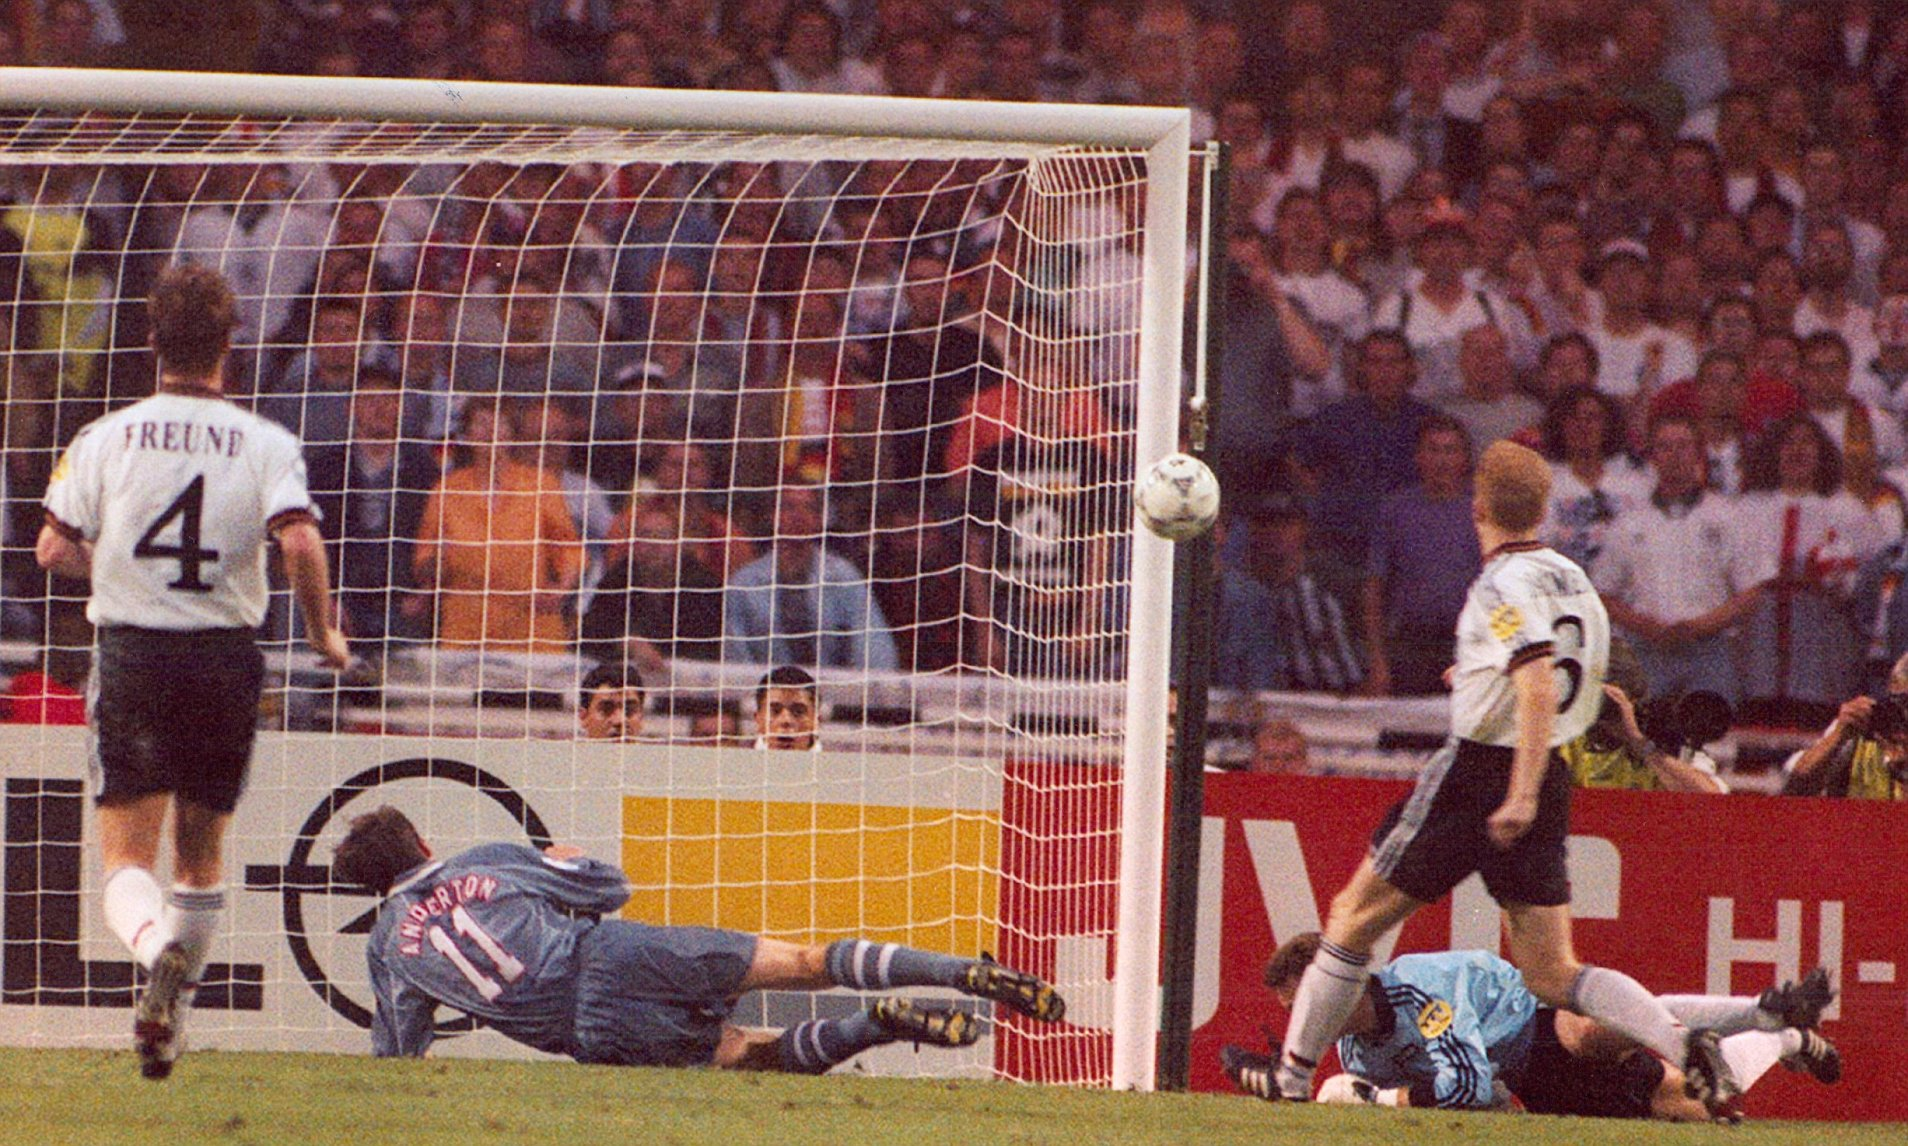 Anderton almost took his team to the finals at Euro 96